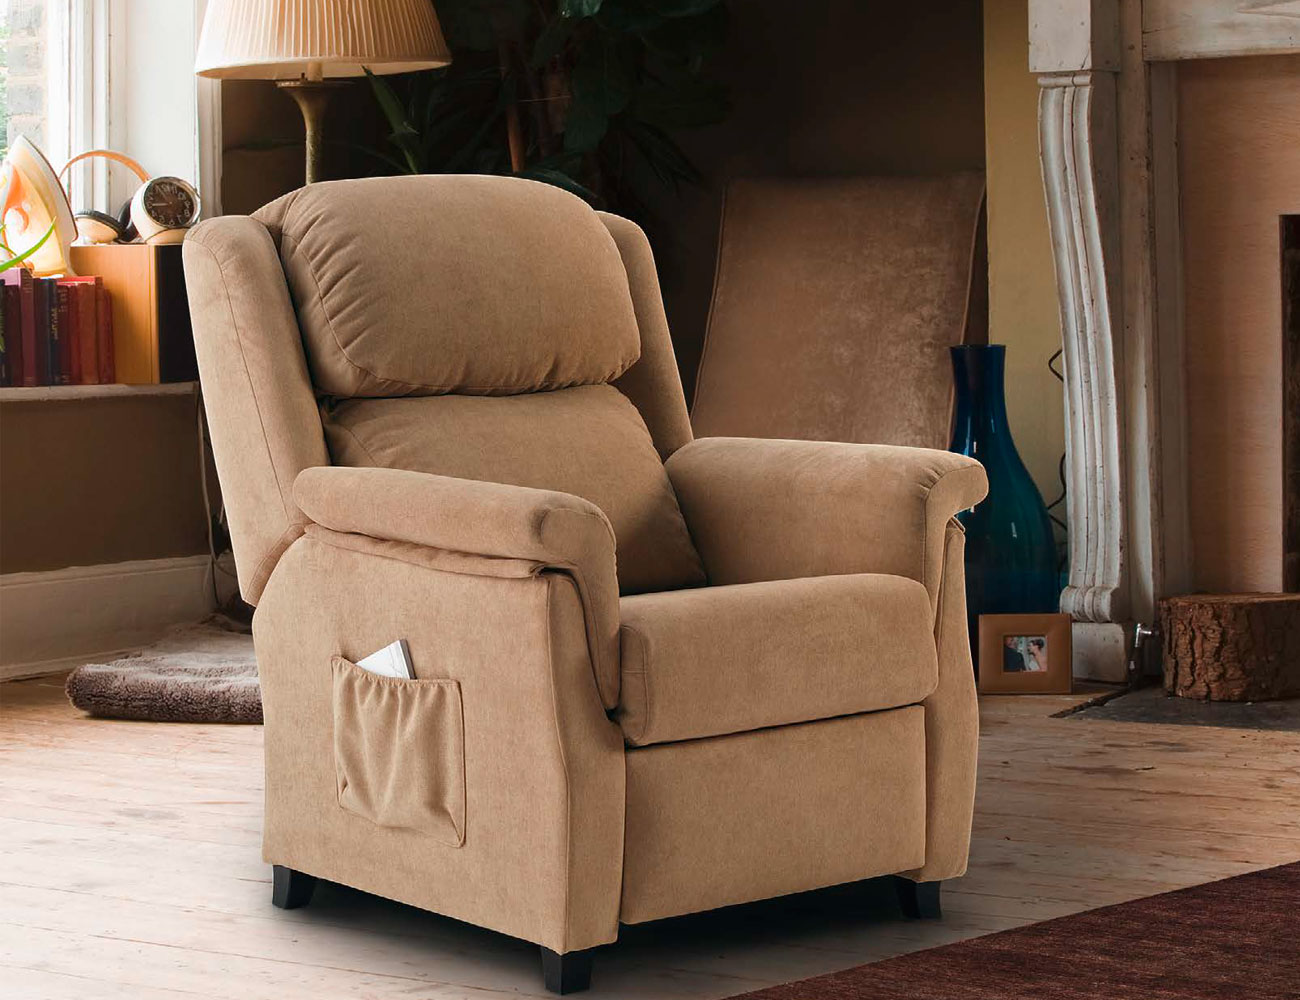 Sillon relax manual bianca 113